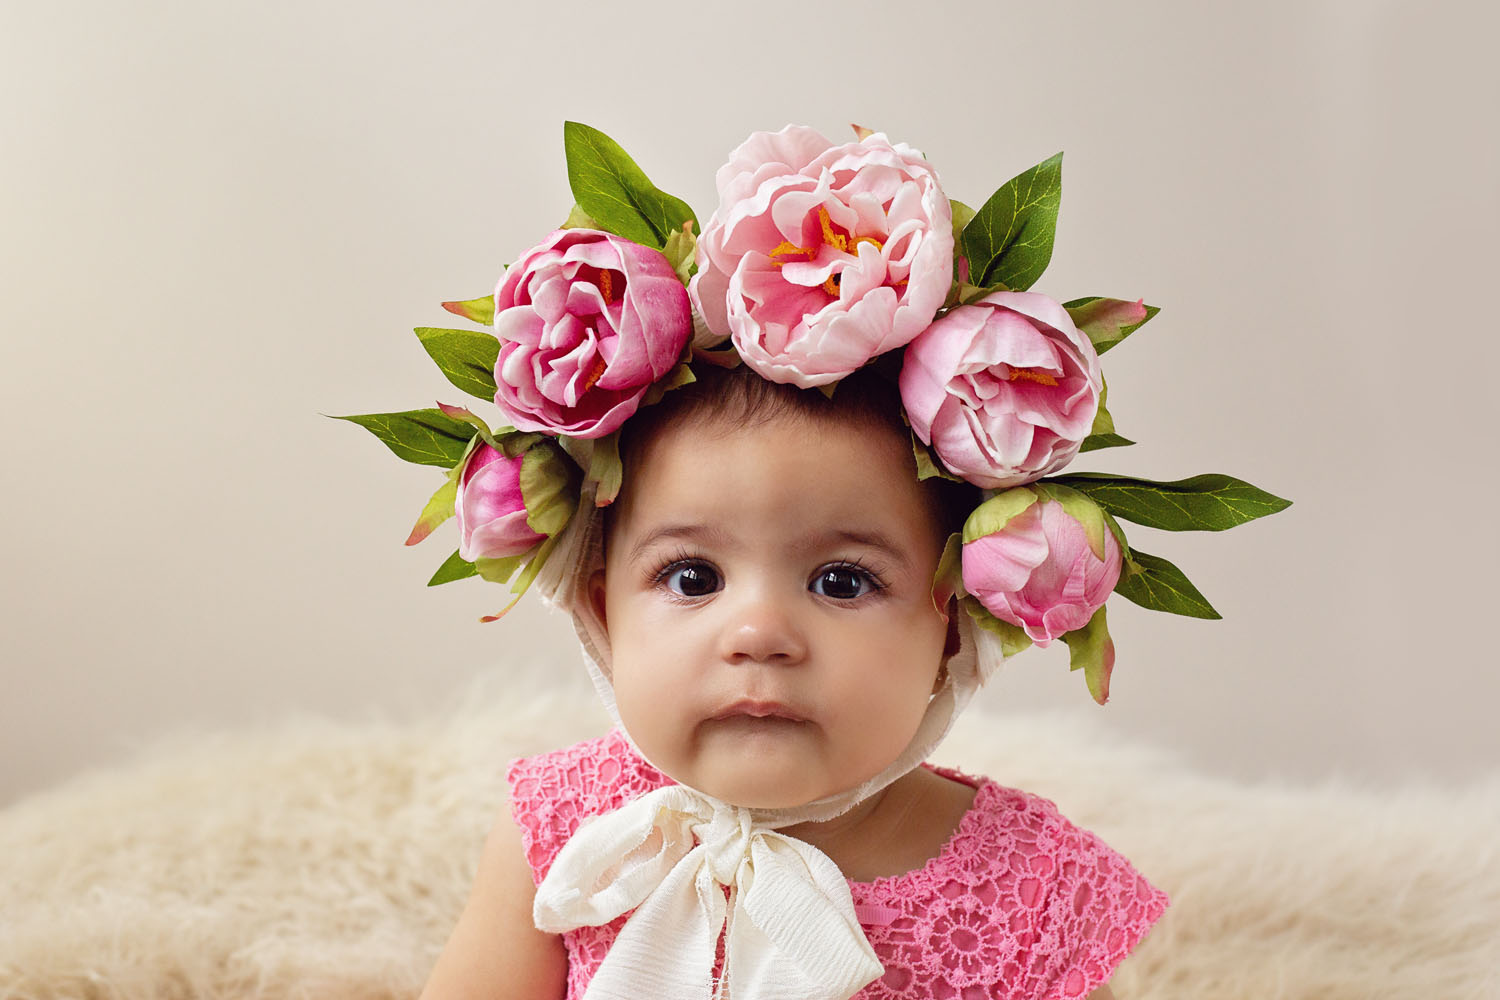 6 month old milestone photograph of baby girl sitting with flowers on her head